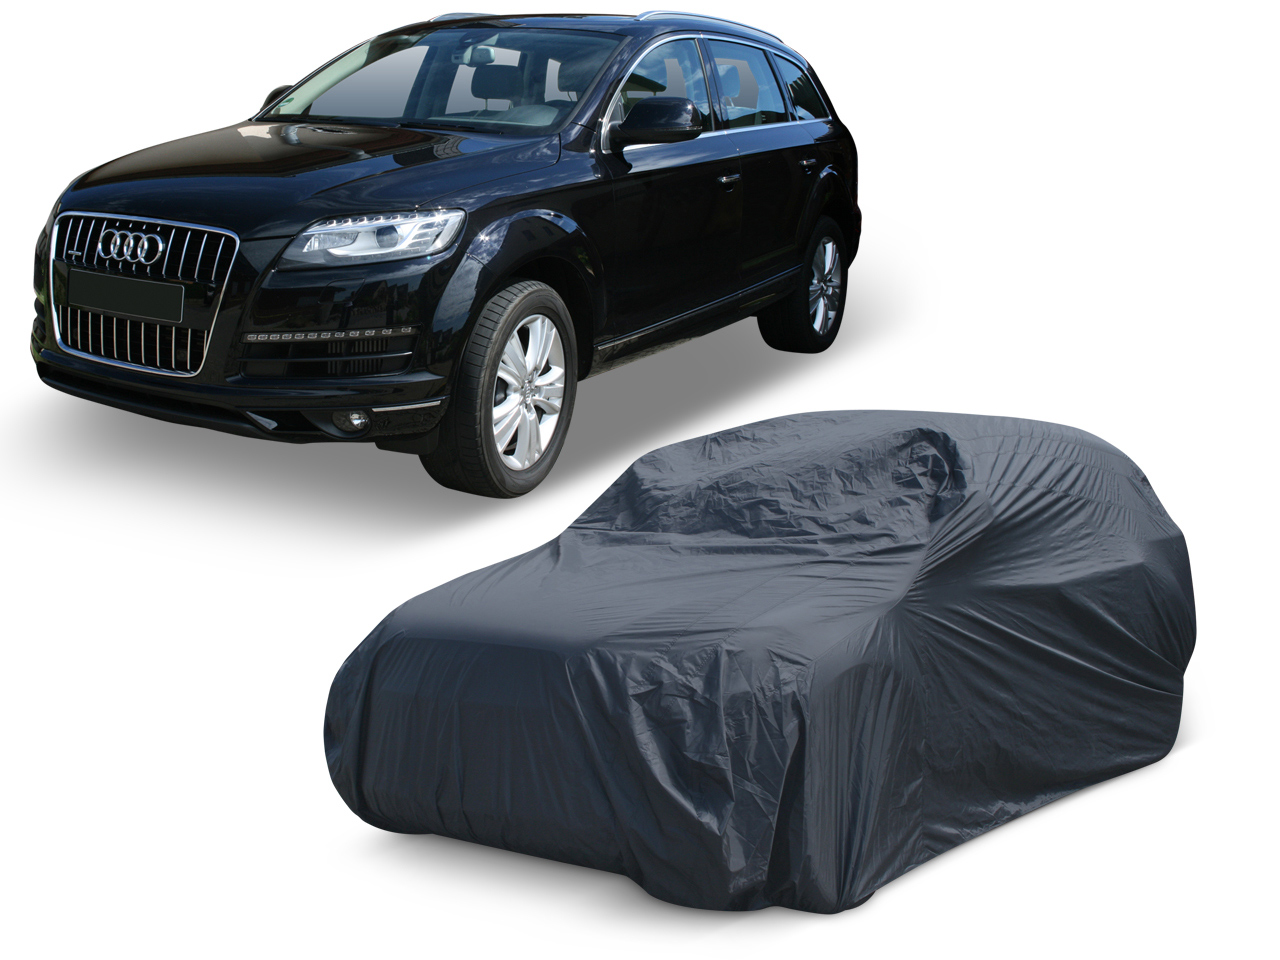 Color : Black JMQCXD Autoabdeckung Kompatibel mit Audi A5 Cabrio Car Cover Outdoor Regenfest Wasserdicht Schnee Sunscreen Pers/önlichkeit Mode Oxford Cloth Car Cover